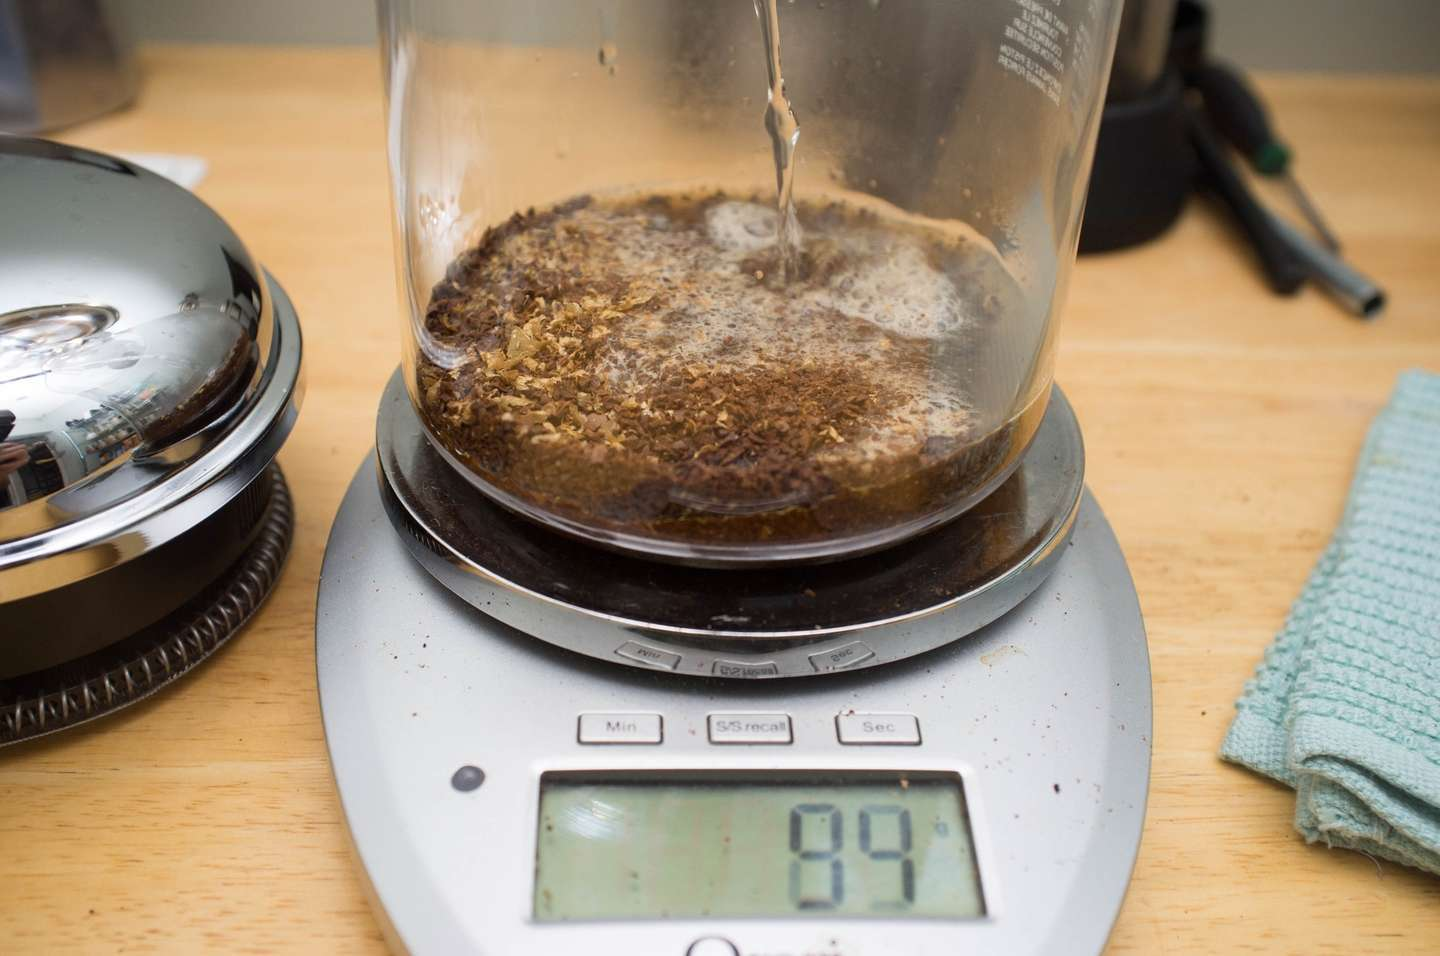 Pour water slowly into the french press